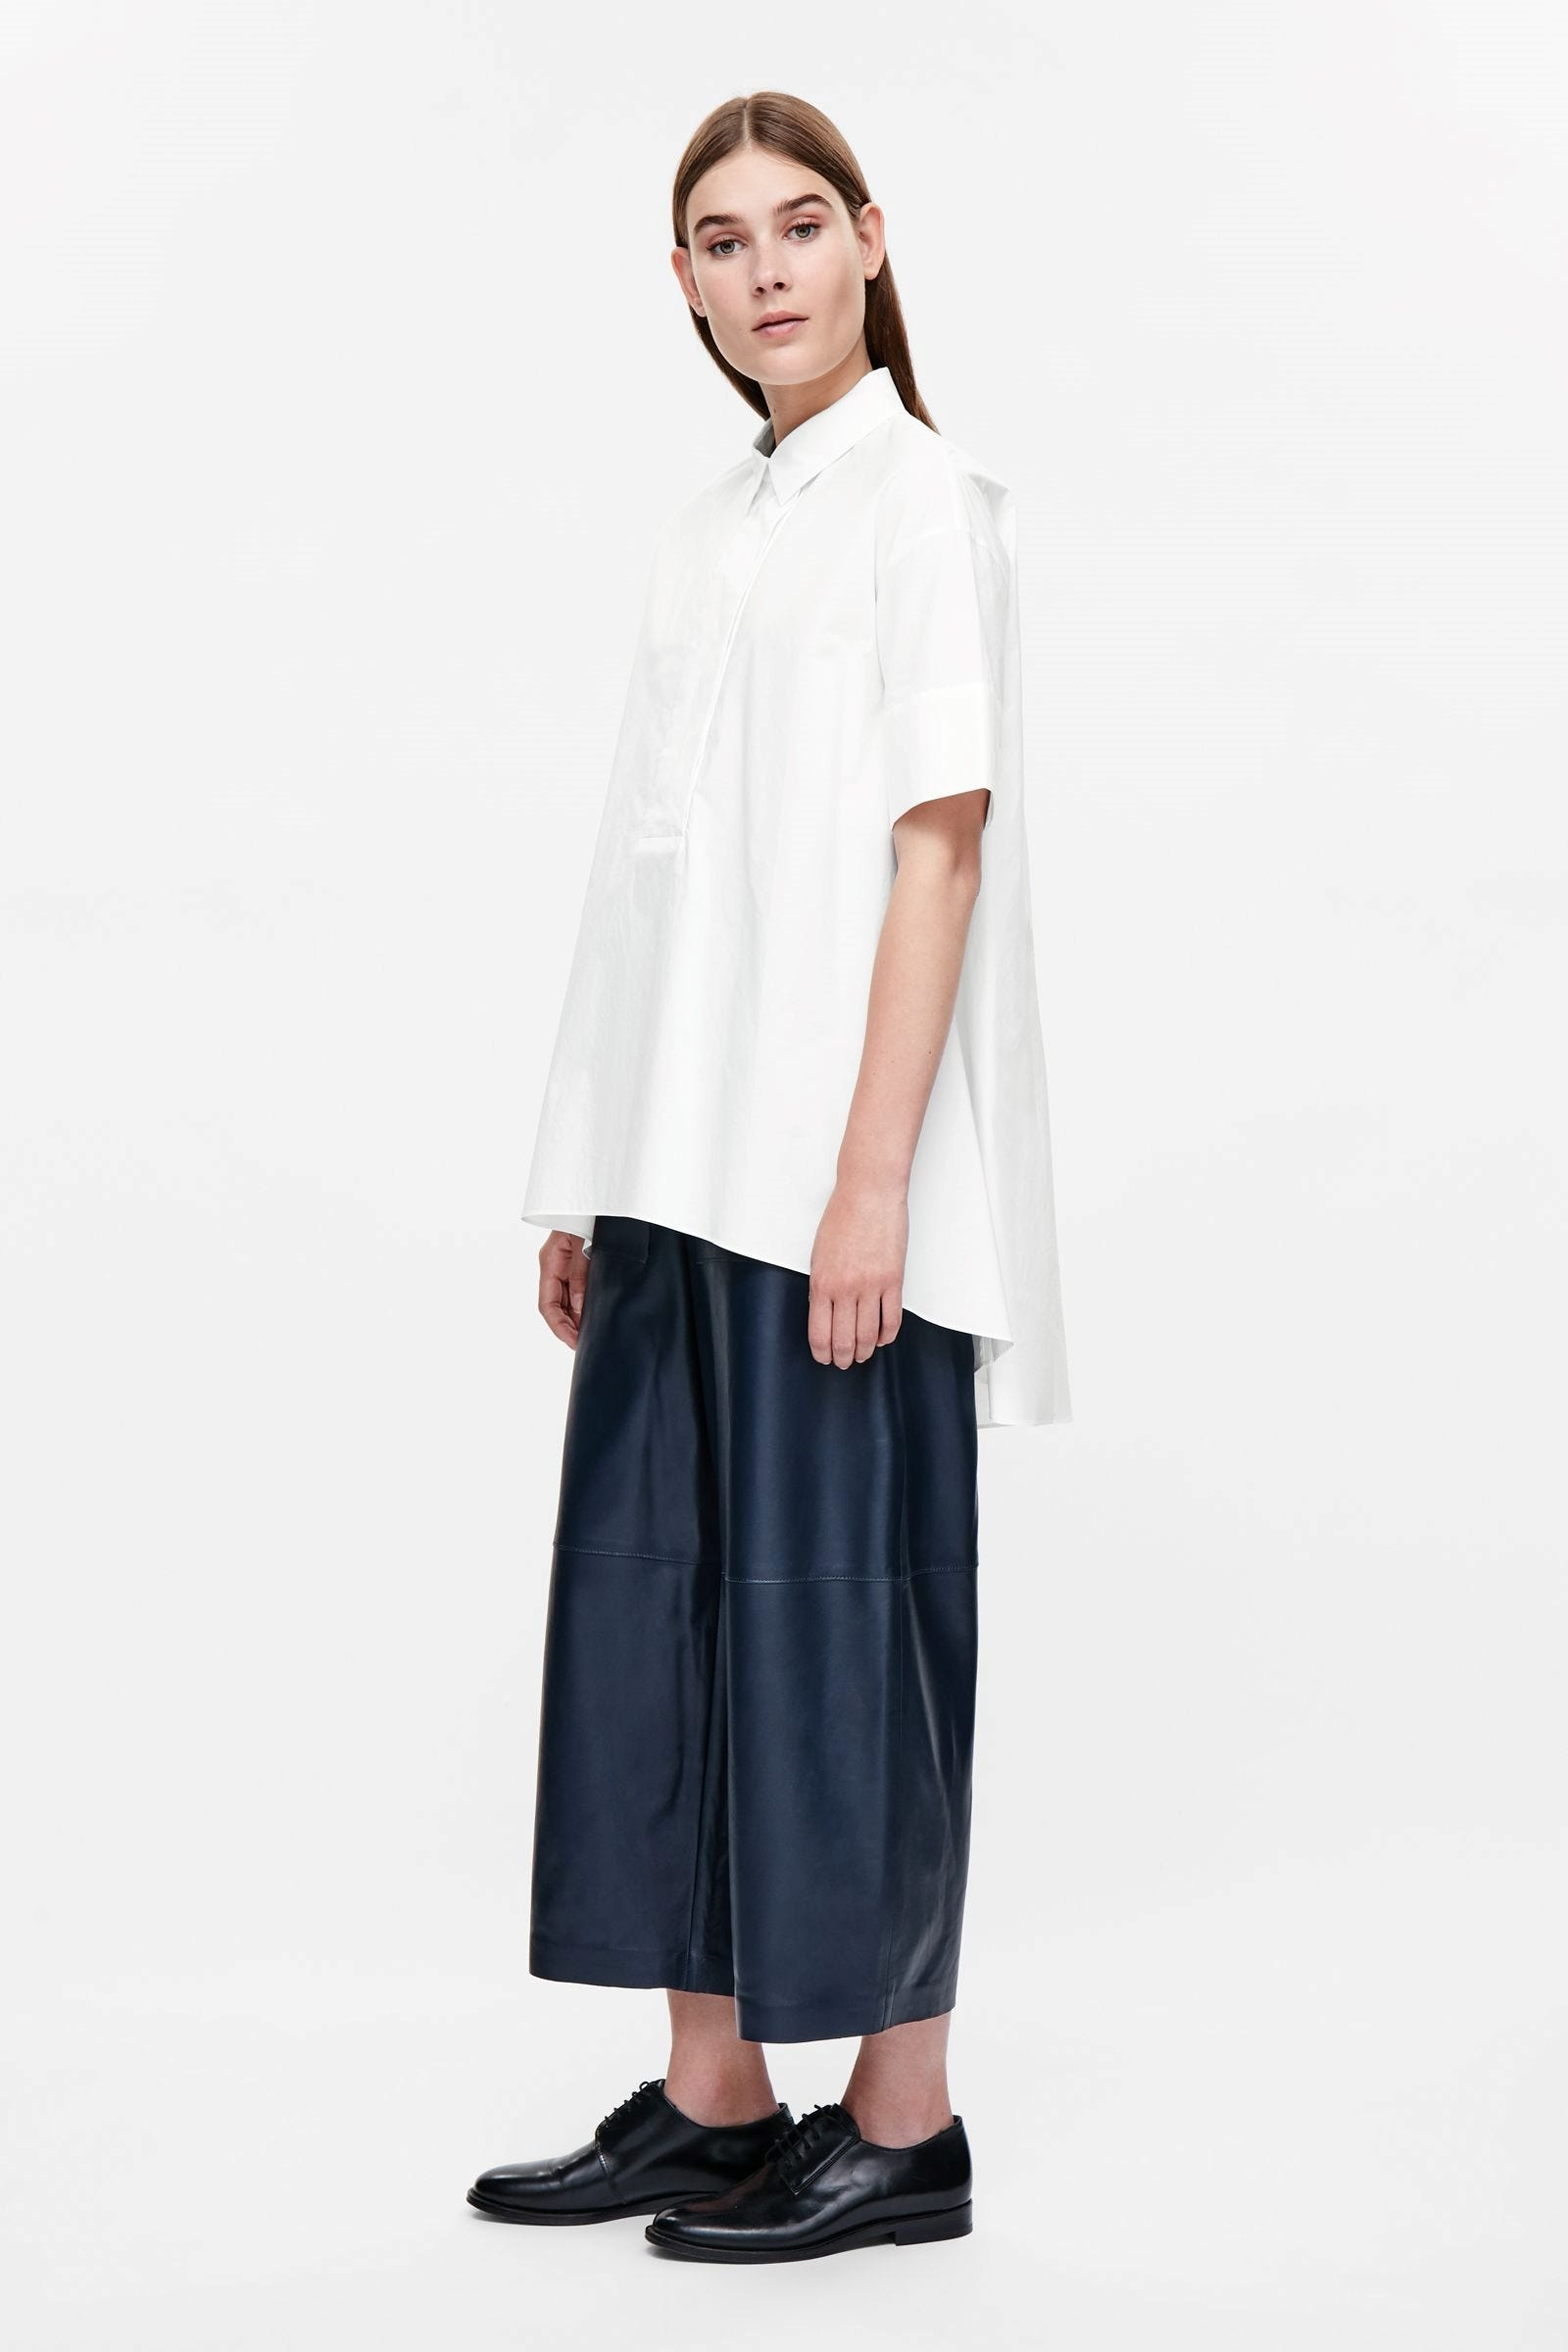 Best Oversized Clothing Baggy Trend Flattering Styles